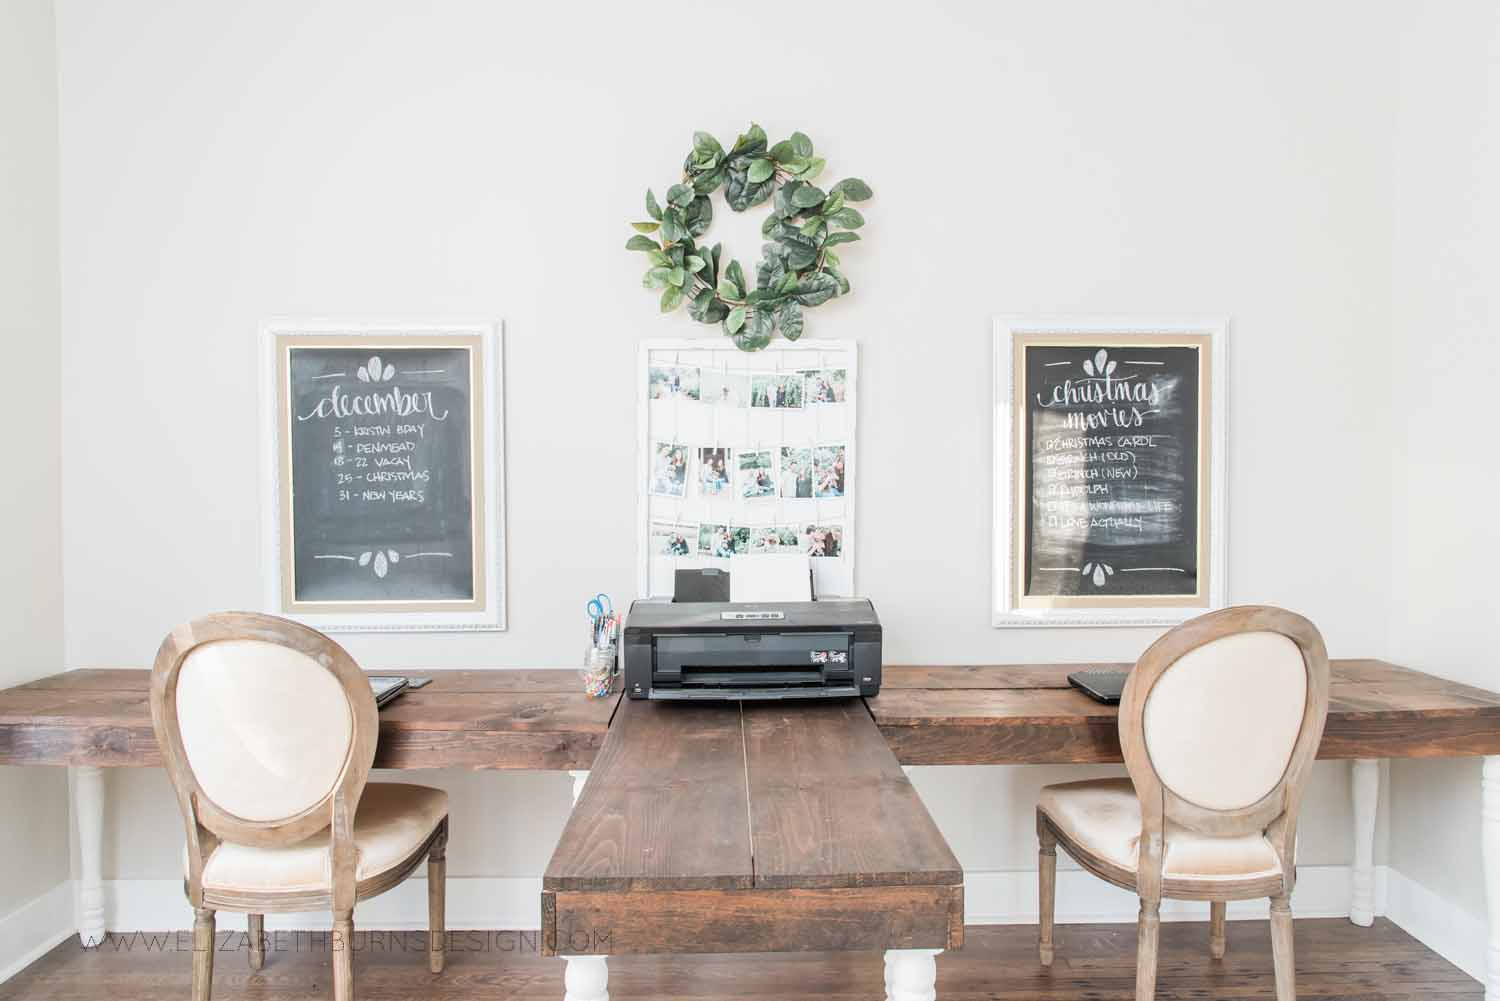 Elizabeth Burns Design Raleigh Interior Designer  Farmhouse Fixer Upper Cottage Renovation, Sherwin Williams Agreeable Gray SW 7029 Shared Office Two Desks (4).jpg